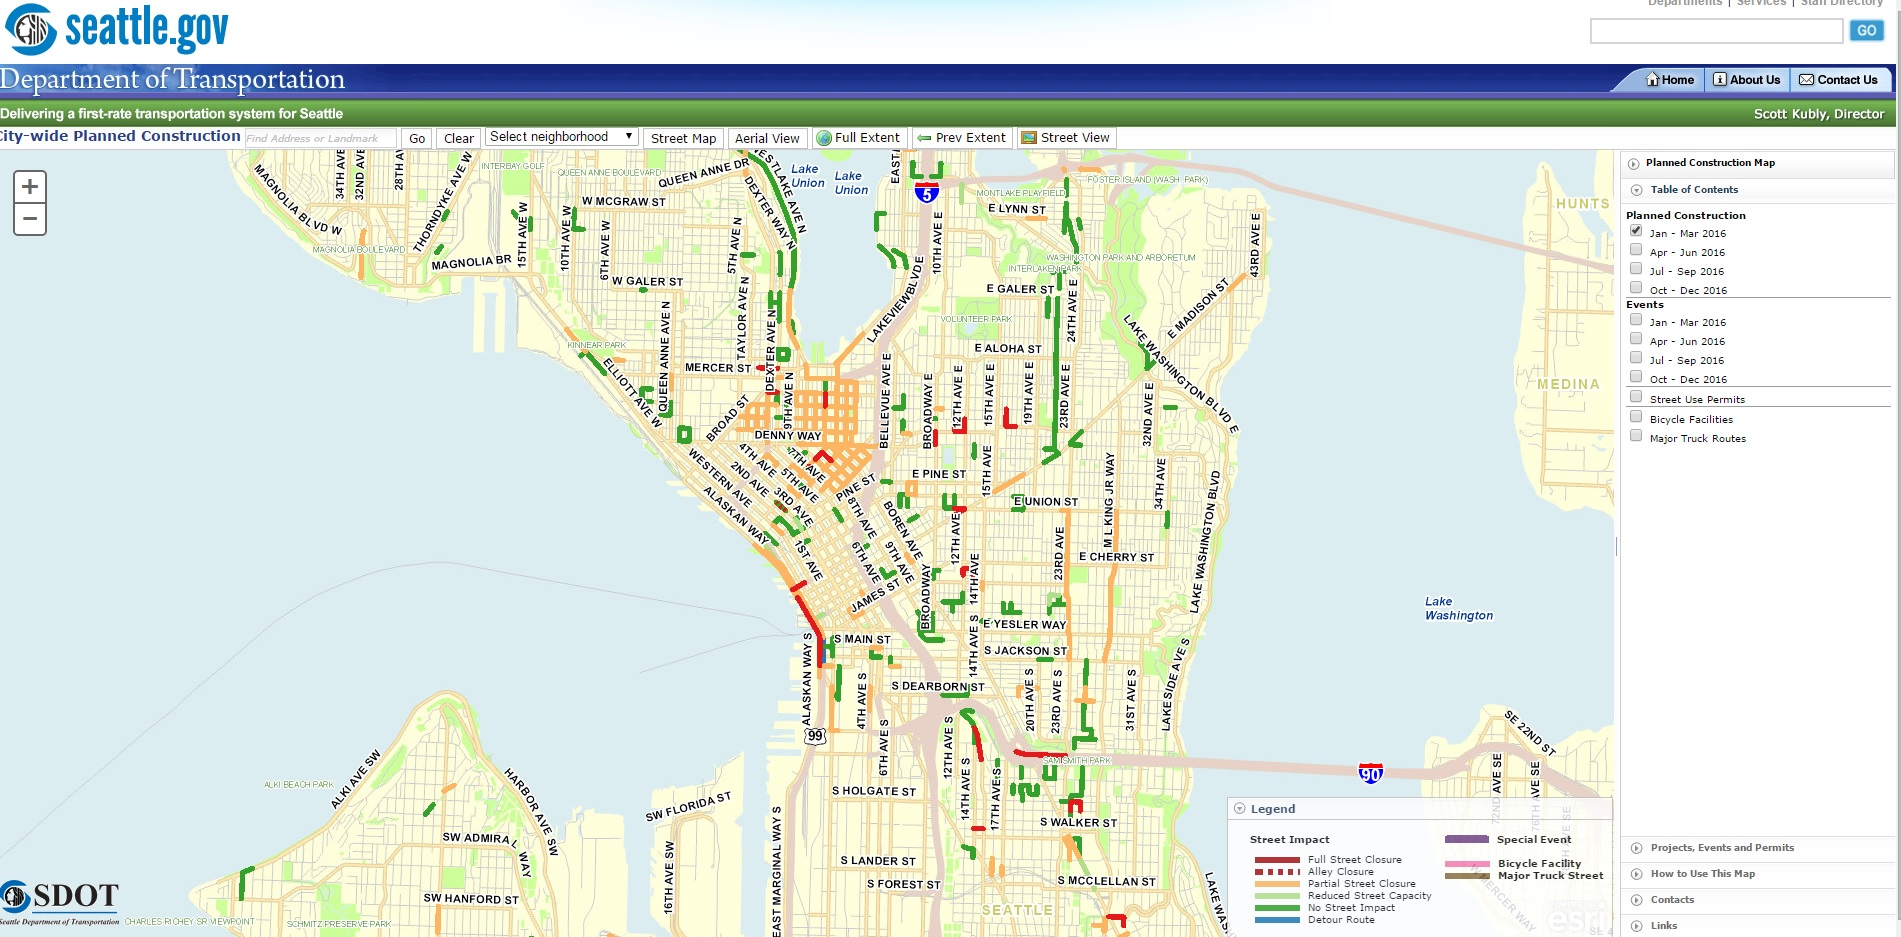 SDOT Launches Map Tool To Help Street Users Deal With Construction